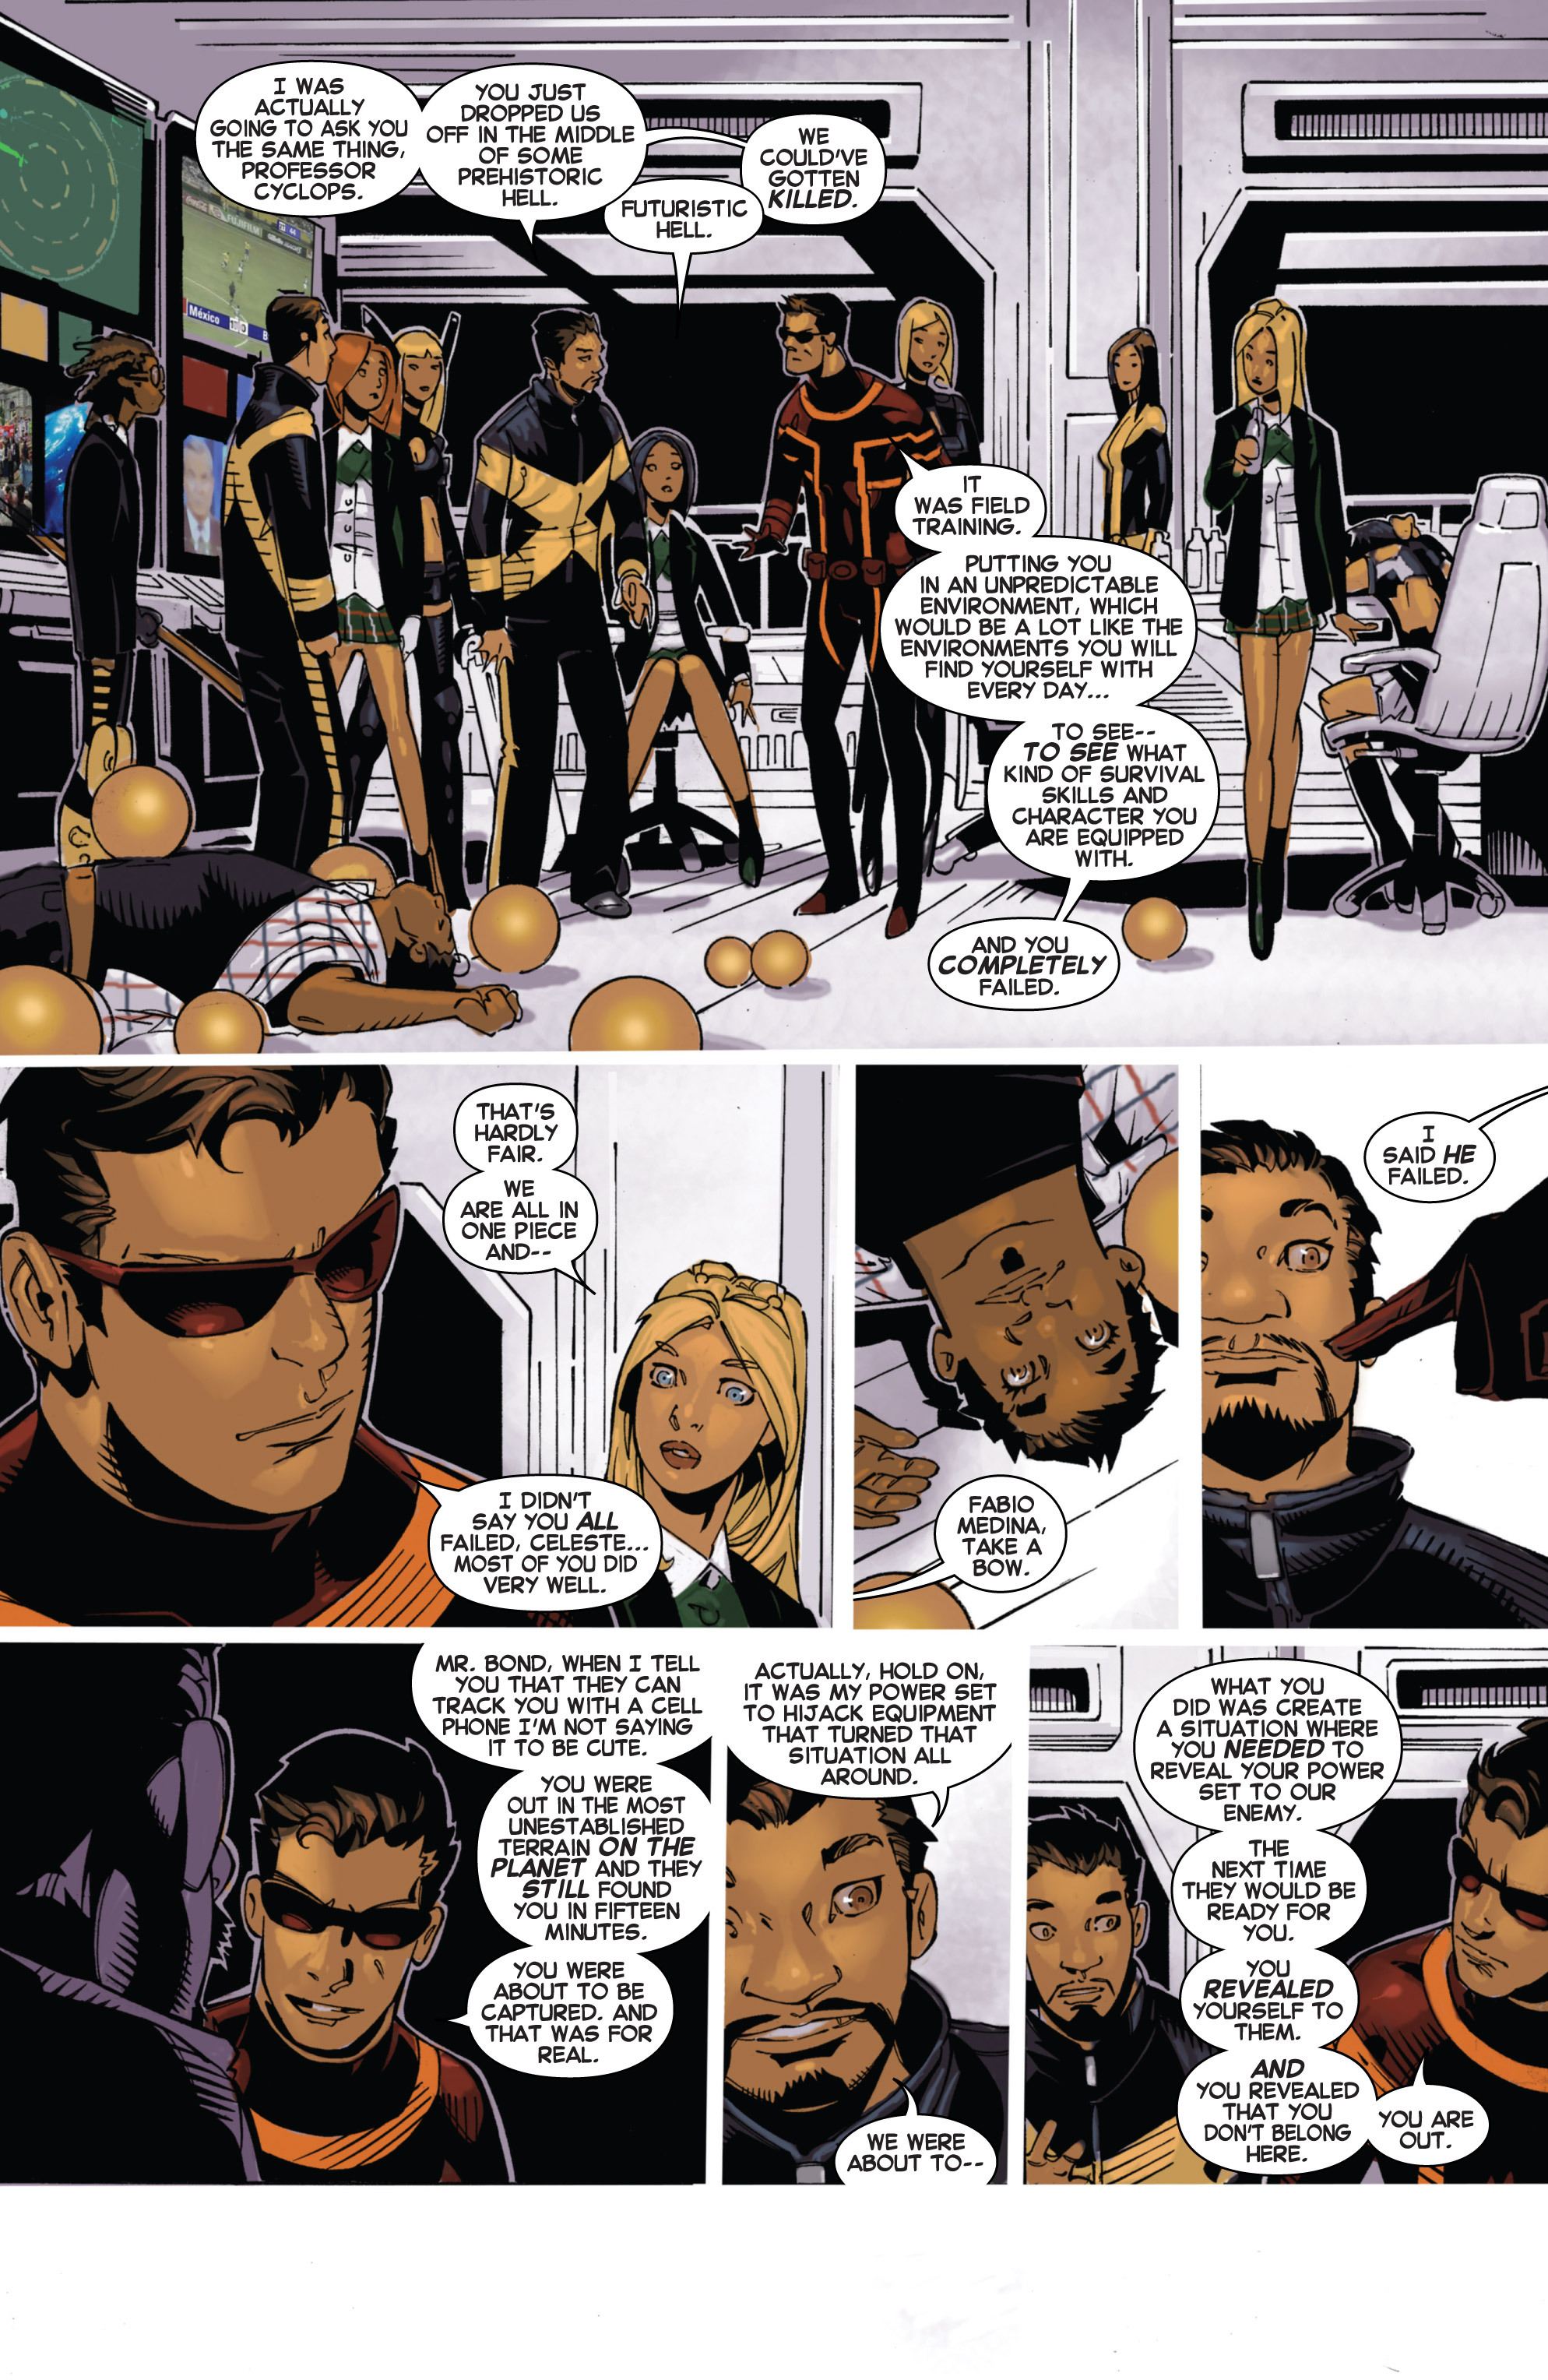 Read online Uncanny X-Men (2013) comic -  Issue # _TPB 3 - The Good, The Bad, The Inhuman - 82